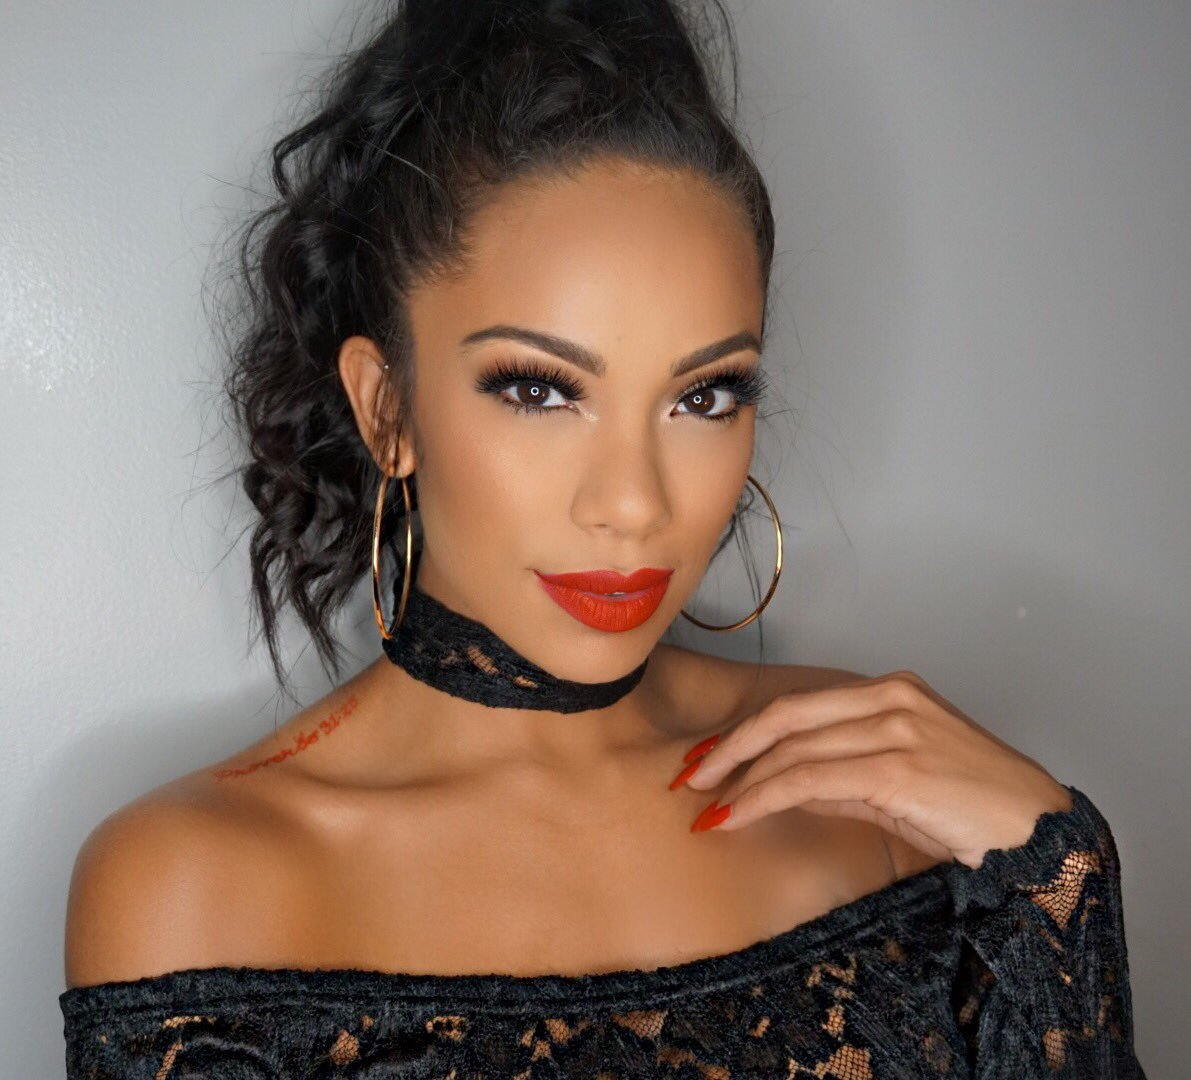 Erica Mena's Recent Photo Has Fans Saying She Looks Like Sade – Other People Notice Something Else